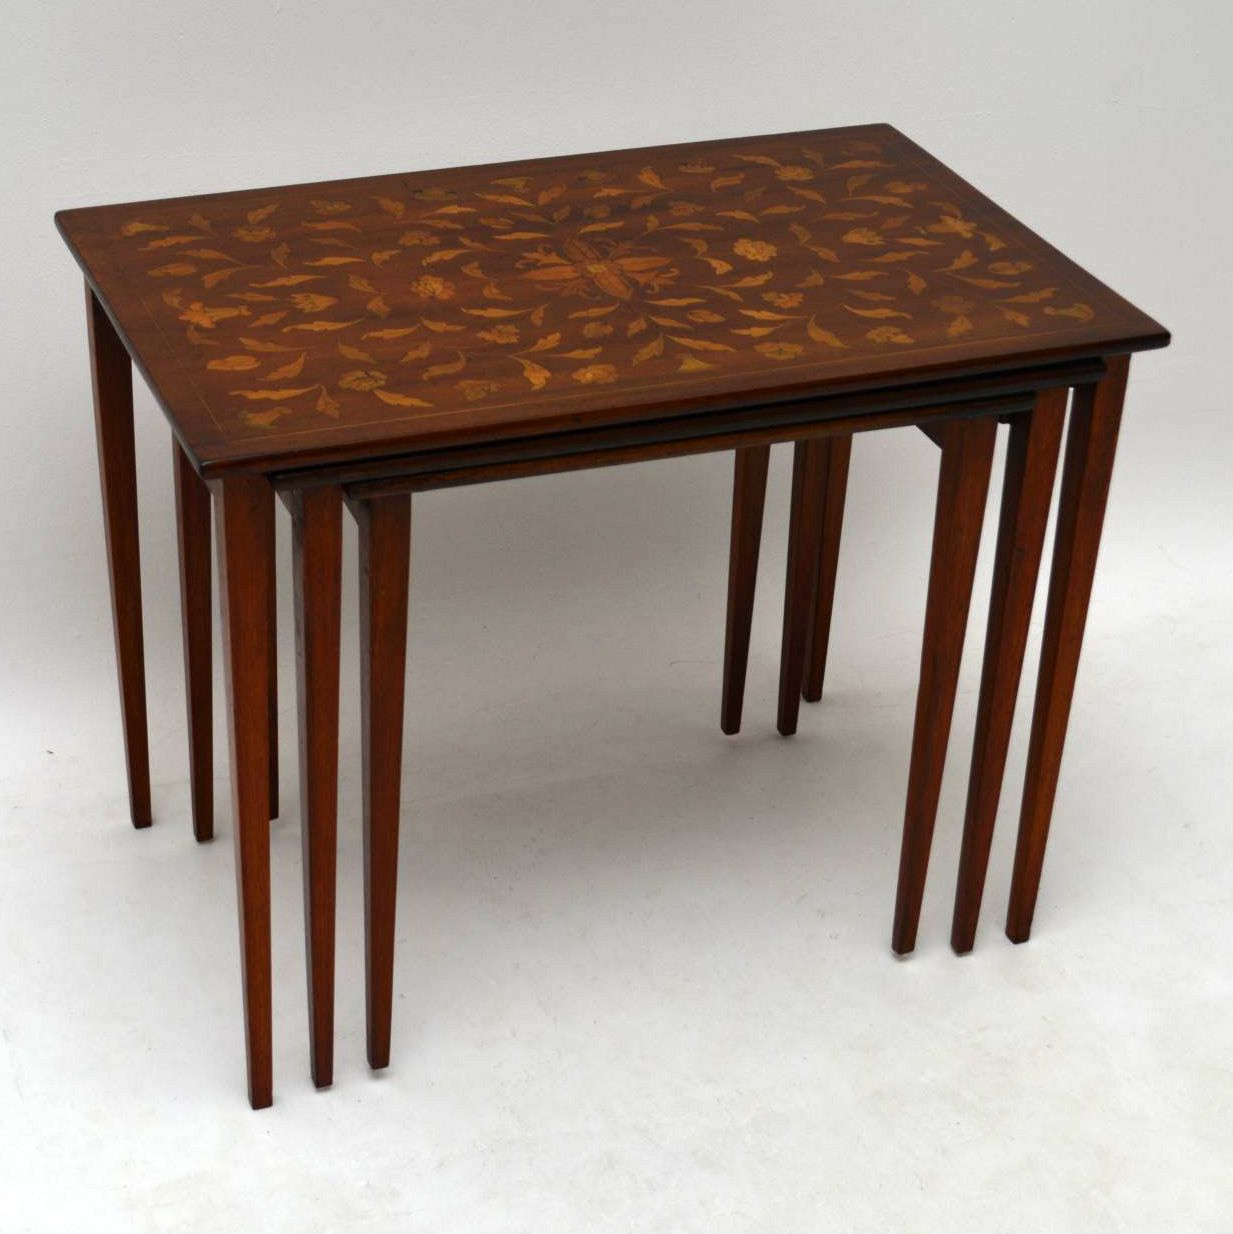 Antique 19th Century Dutch Marquetry Nest of Tables